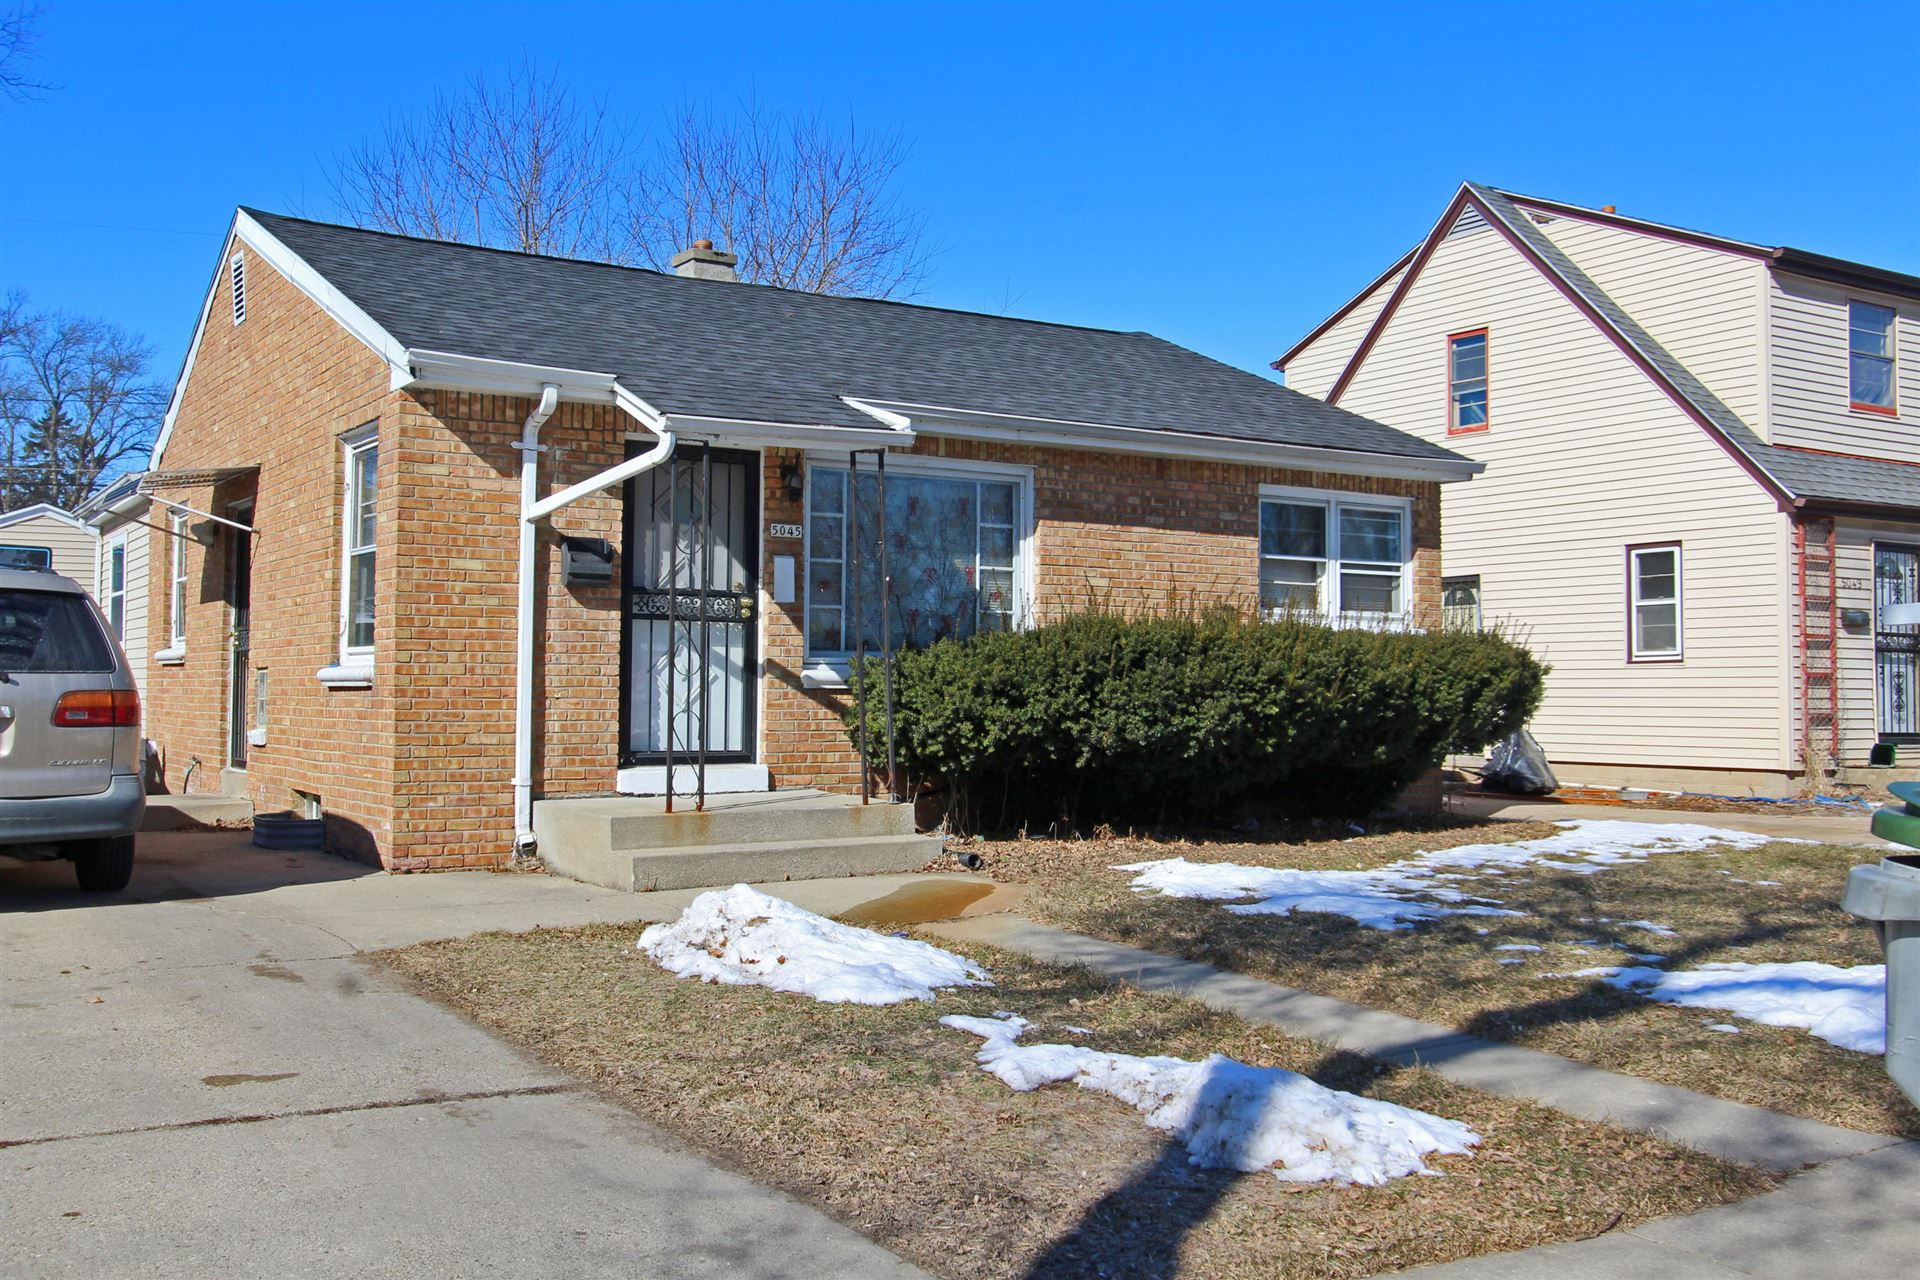 5045 N 55th St, Milwaukee, WI 53218 - #: 1678853